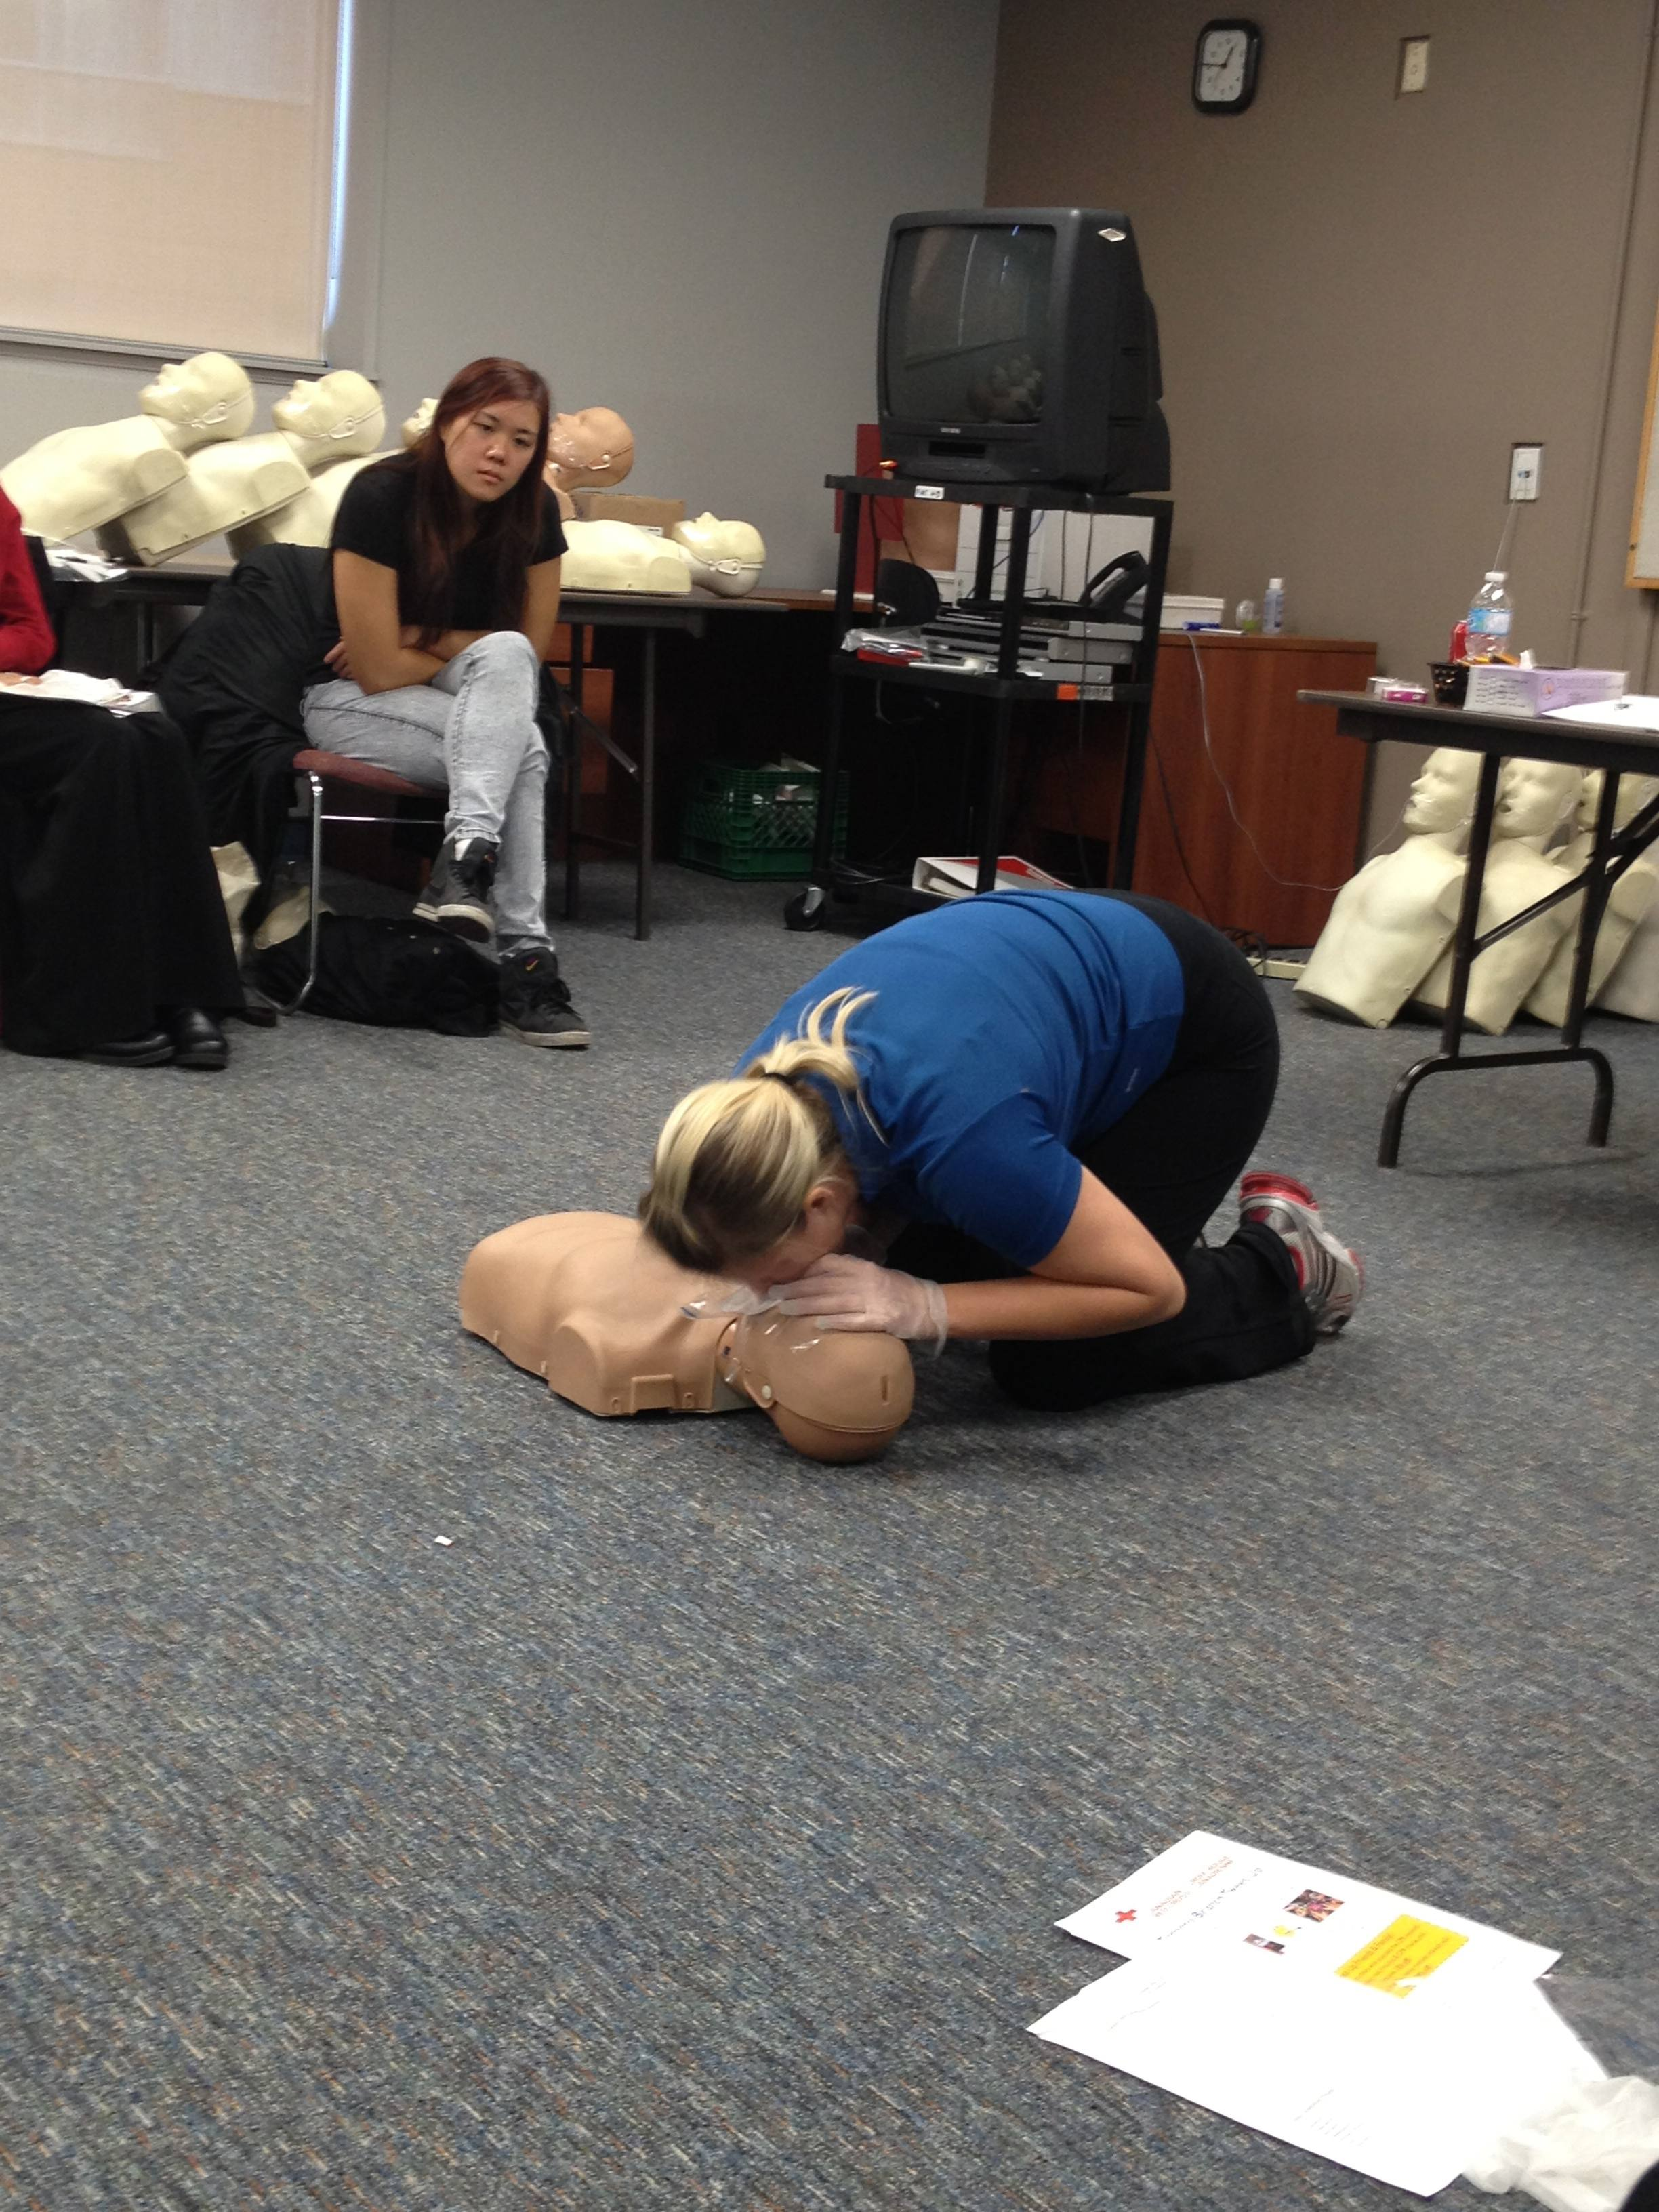 Tweeting My Way Through CPR Training at #redcrossCPR ...